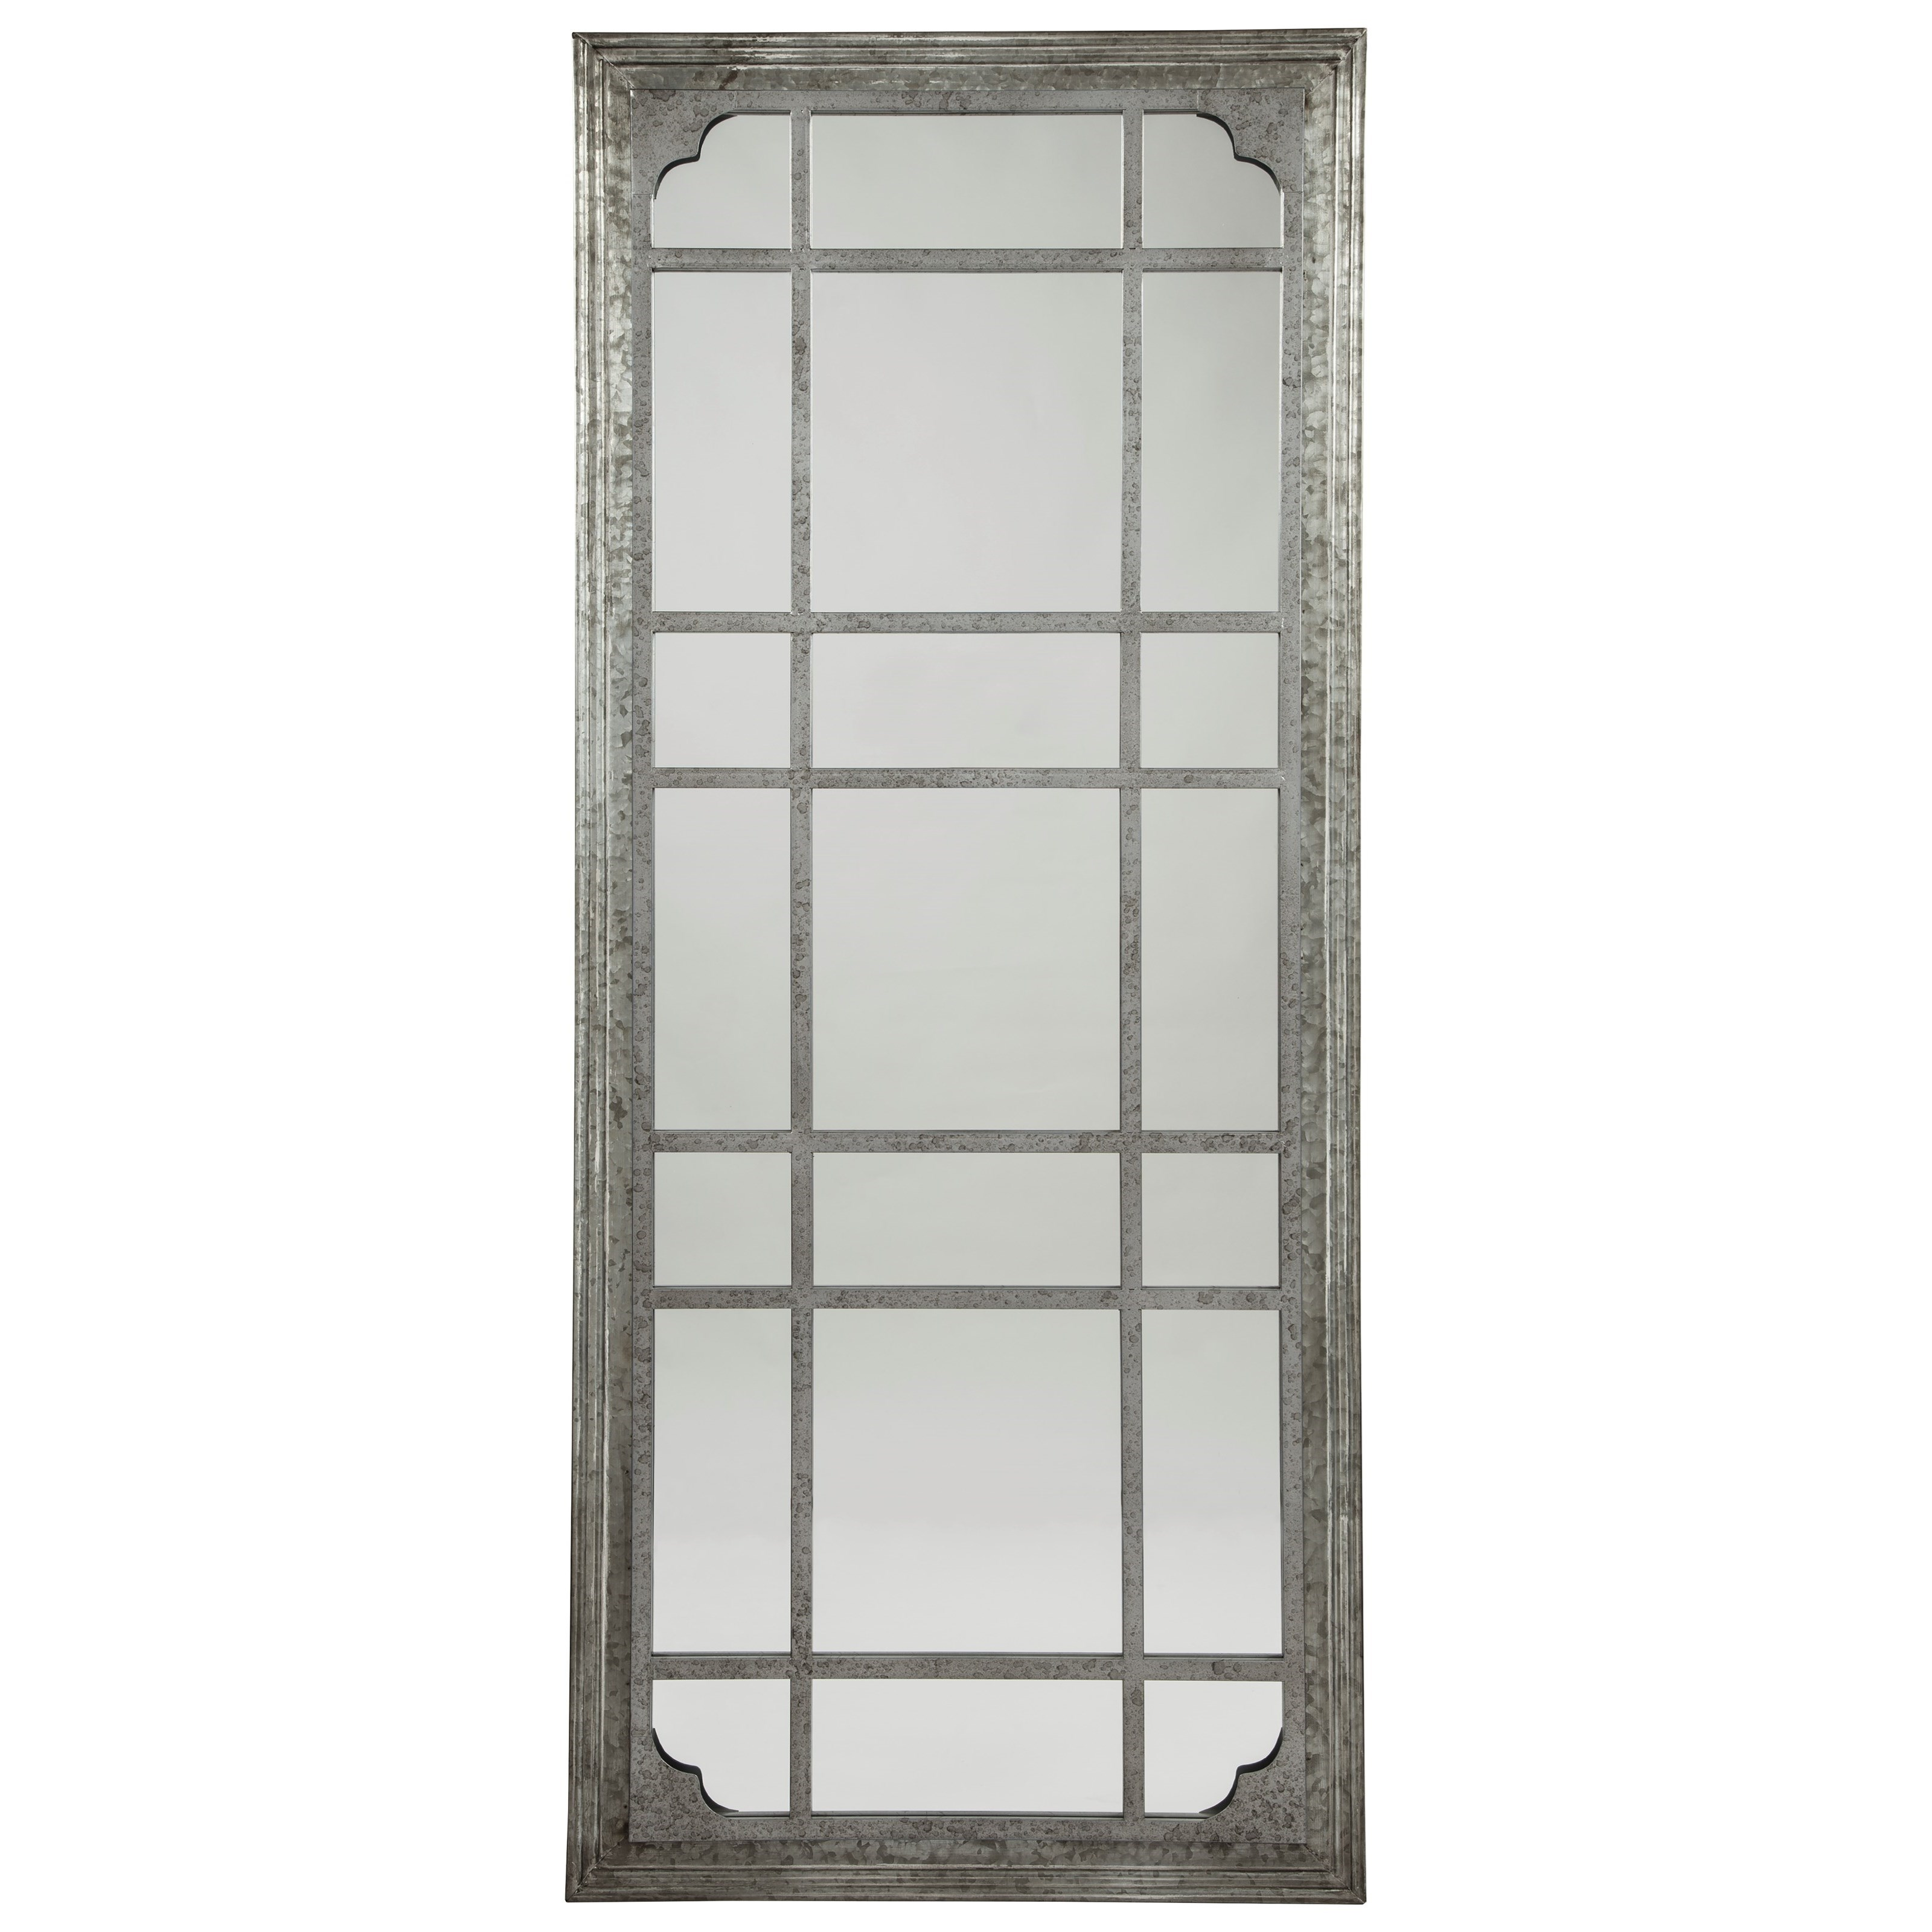 Accent Mirrors Remy Antique Gray Accent Mirror at Van Hill Furniture